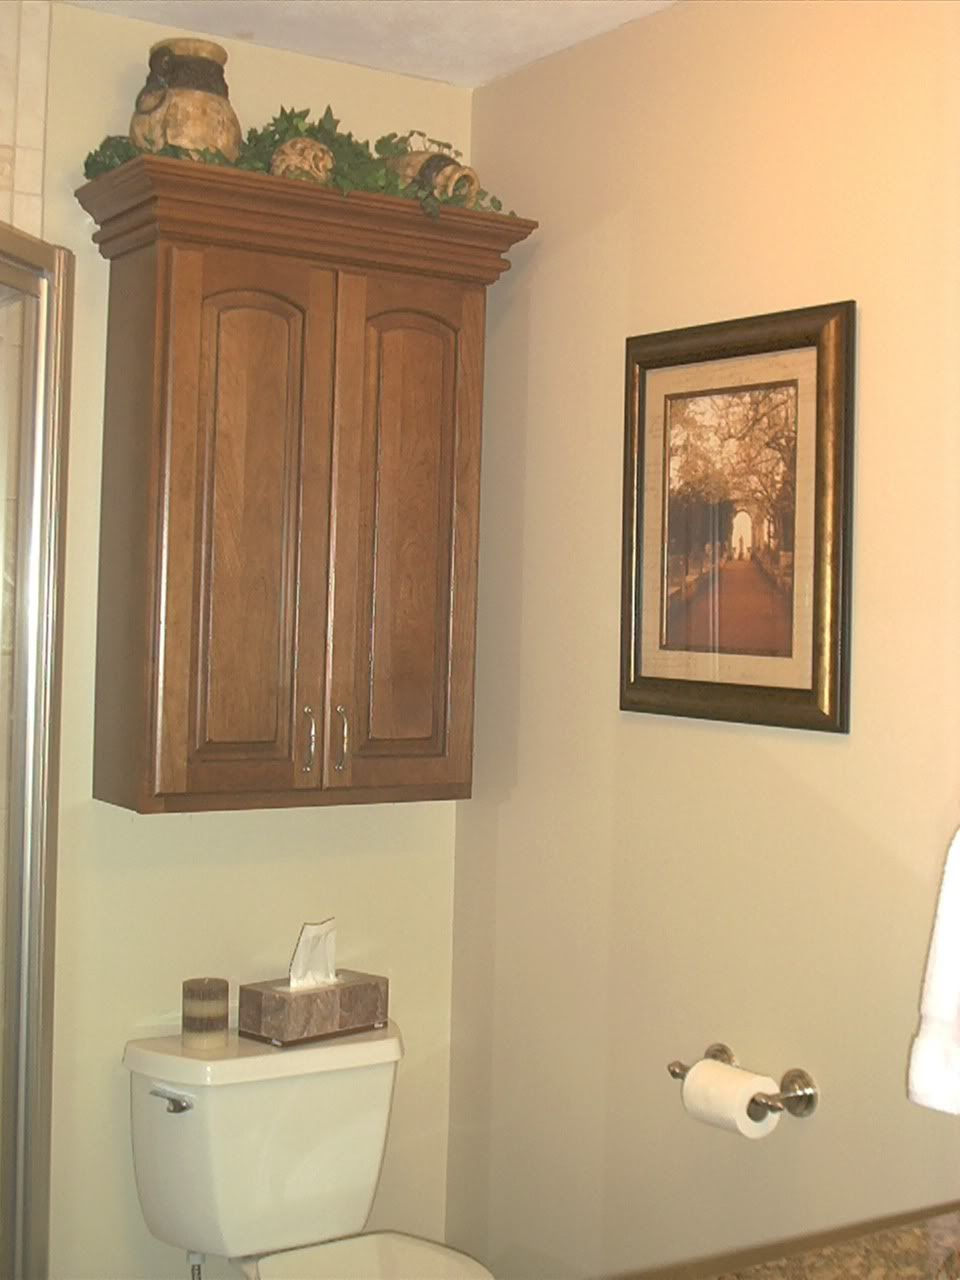 Bathroom Storage Cabinets Over Toilet Wall Cabinet Above inside size 960 X 1280